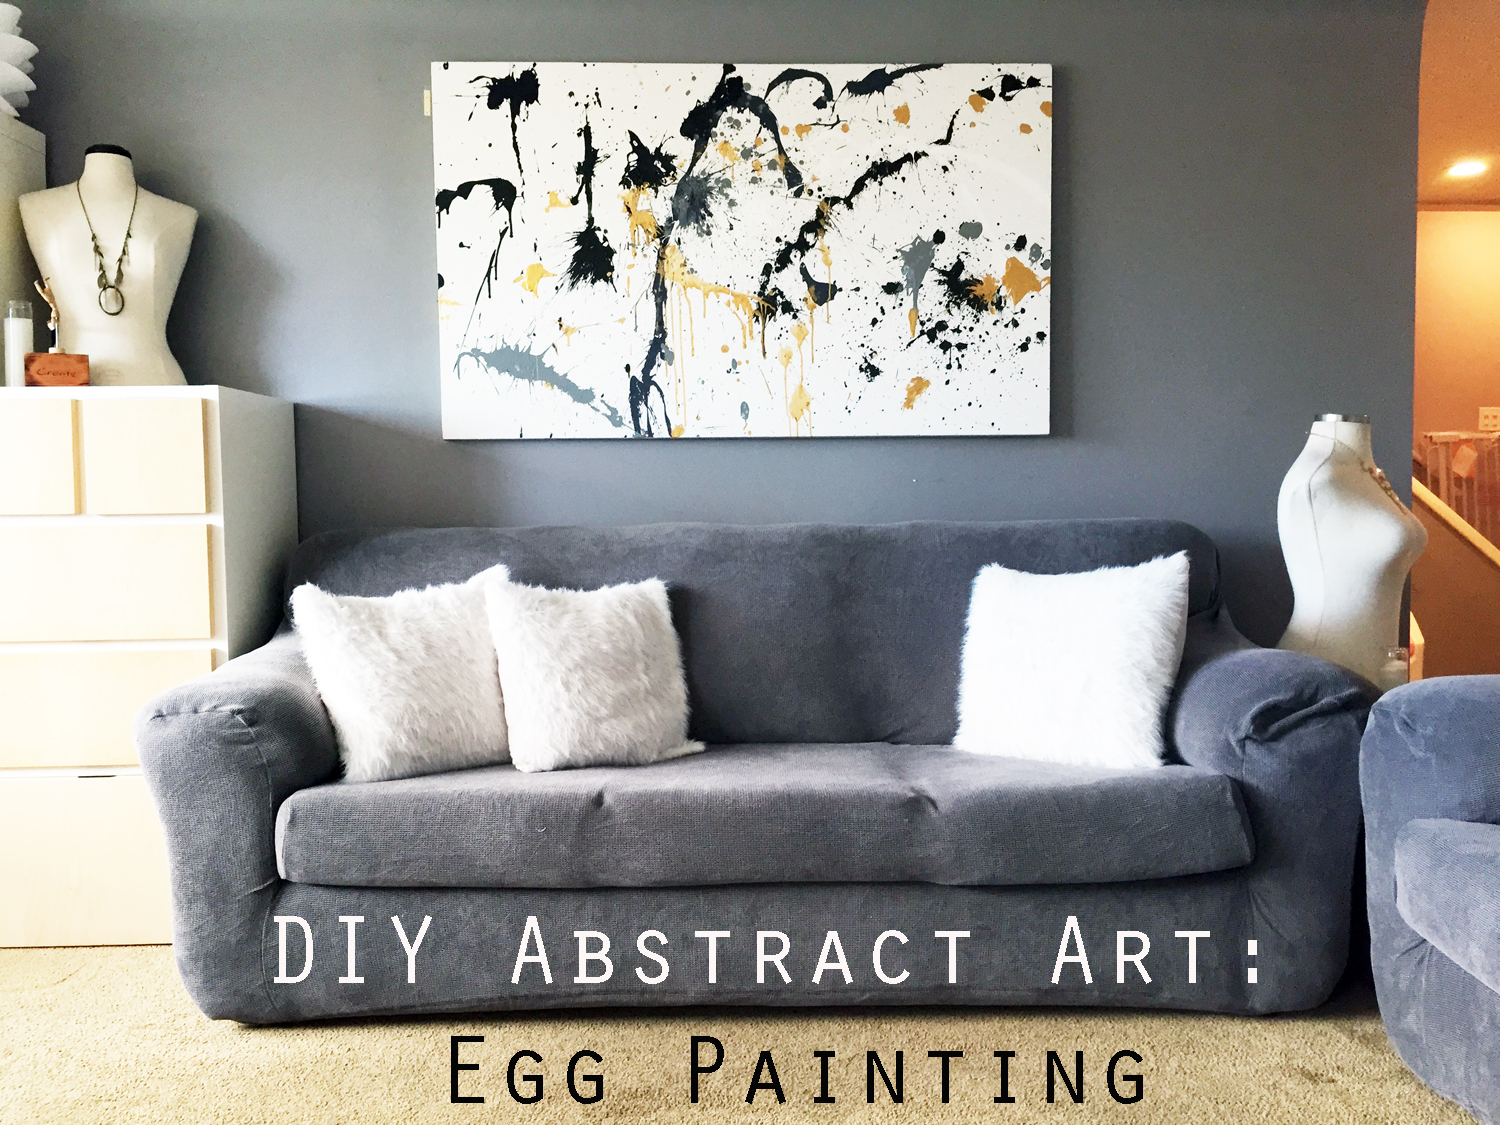 DIY Abstract Wall Art: Egg Painting for Home Decor - Lip Stain And ...